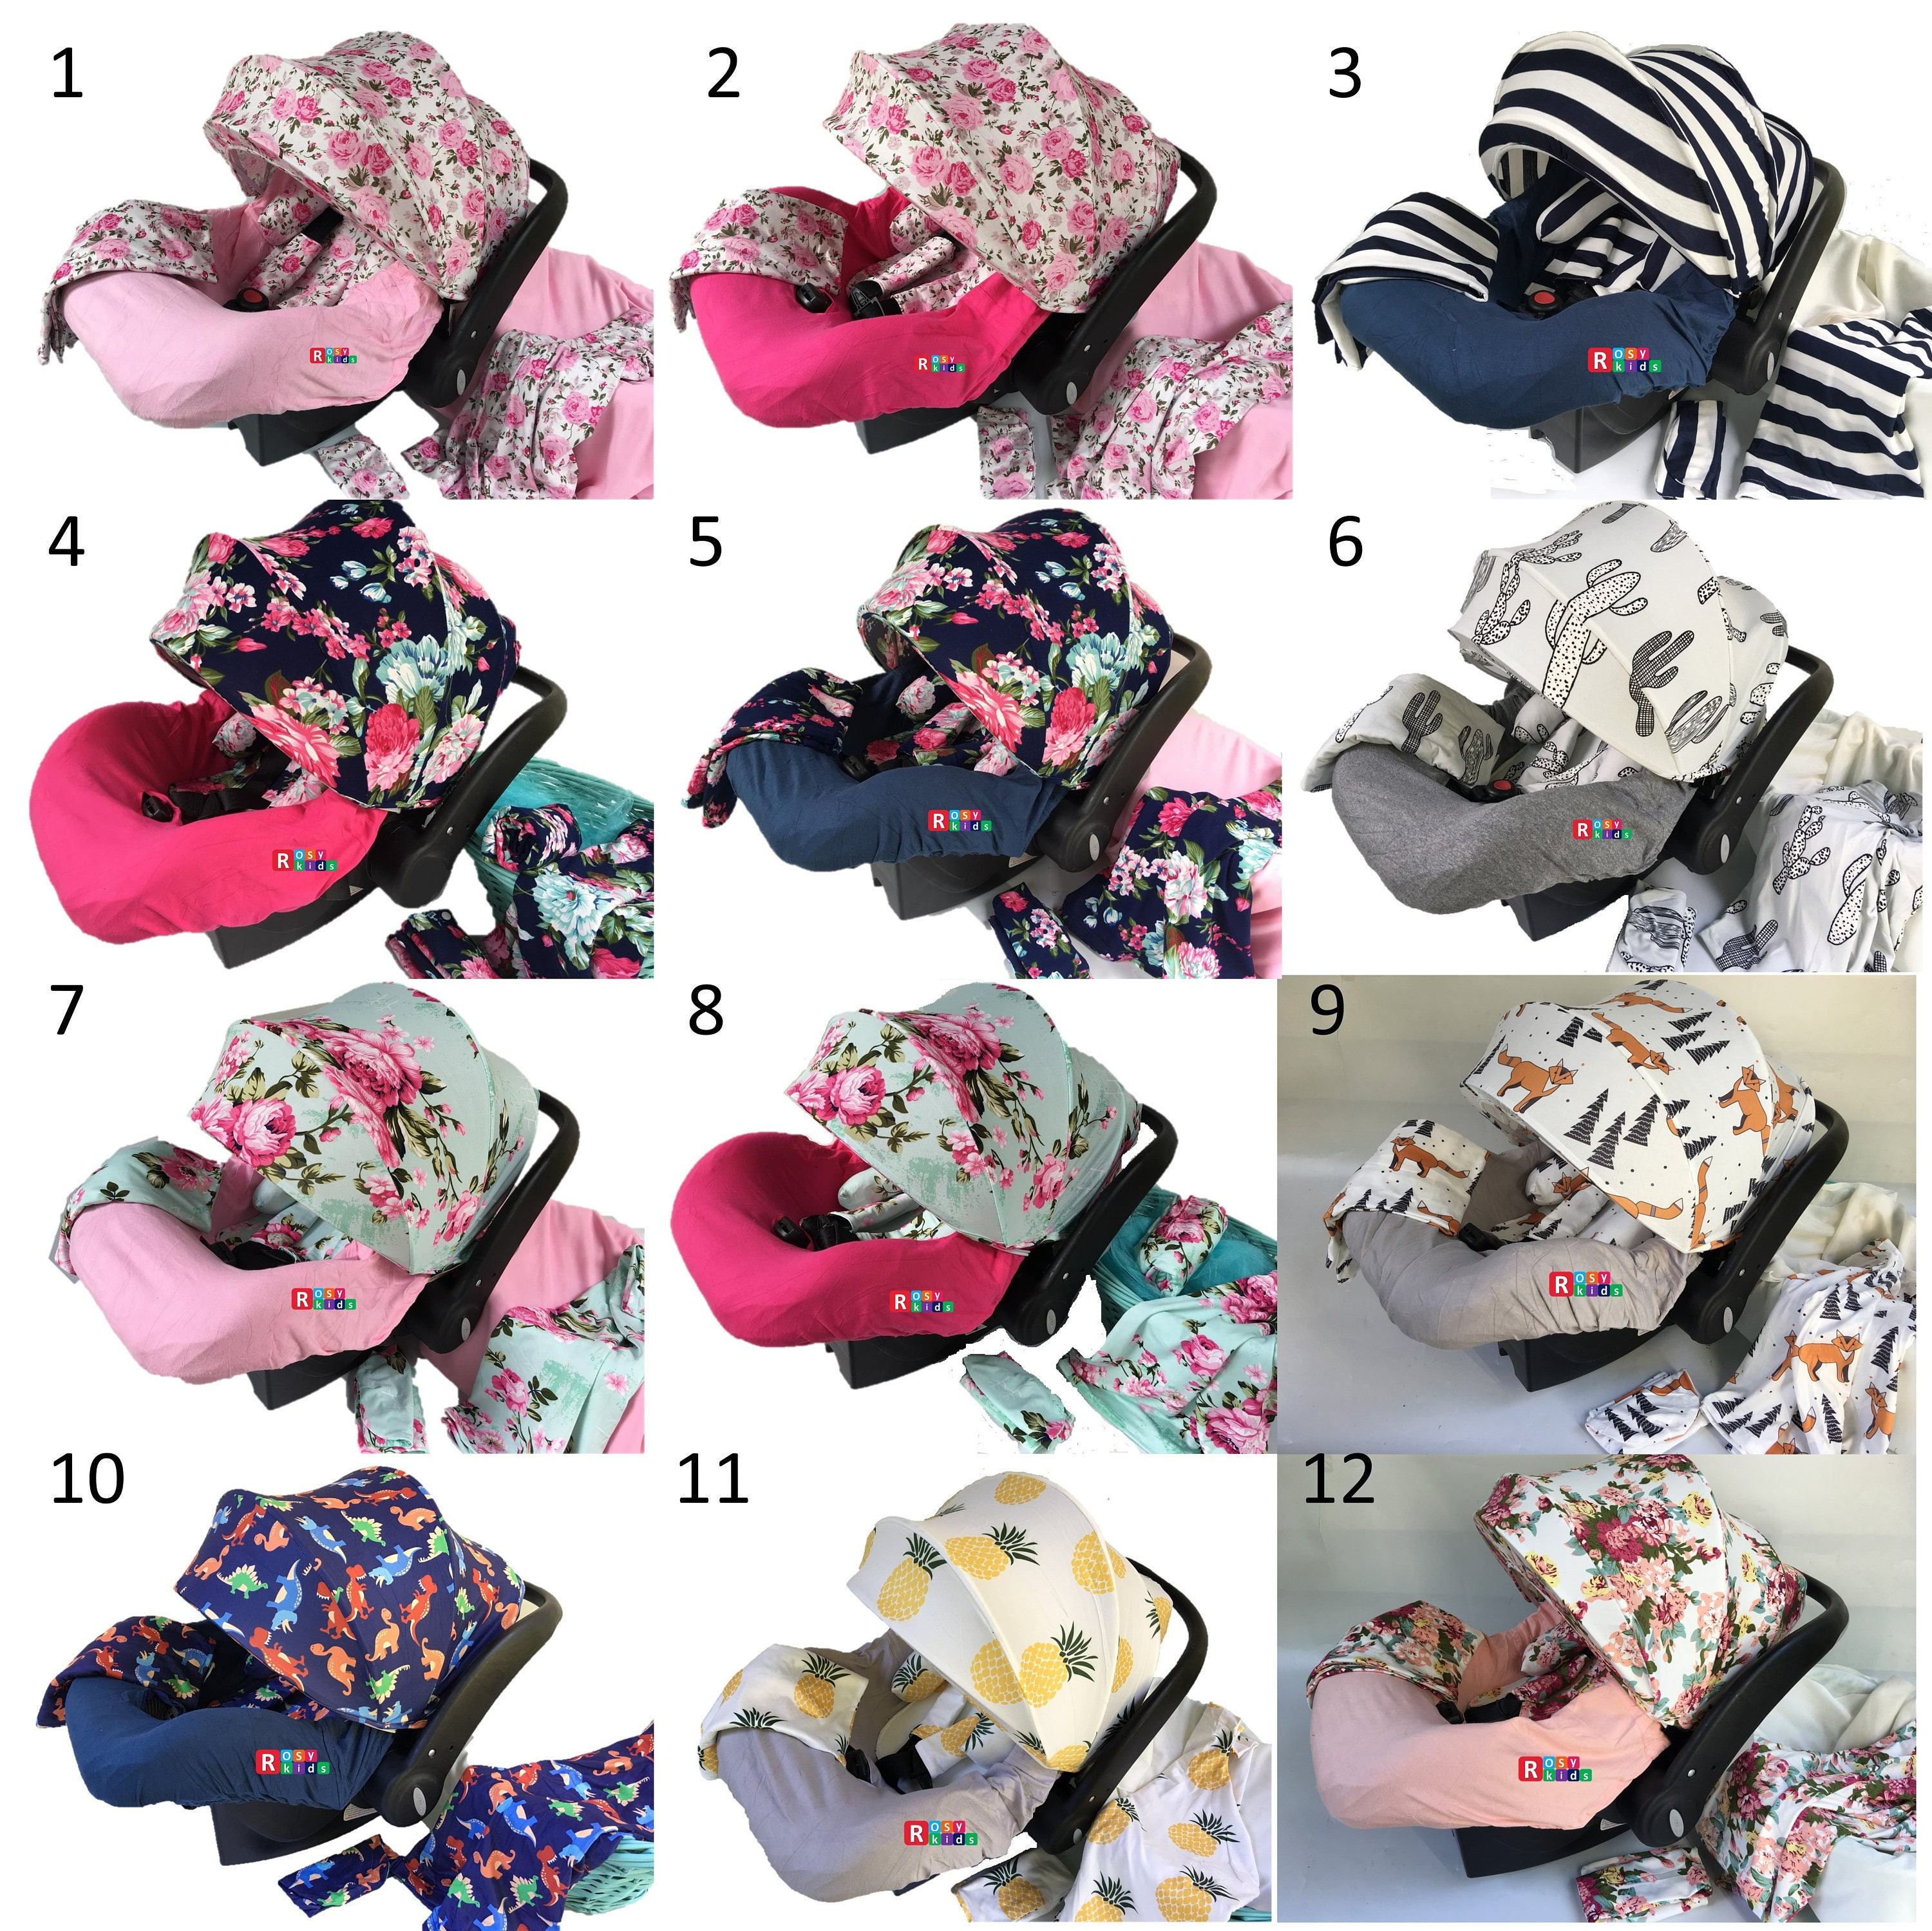 9pc Baby Boy Girl Ultimate Set Of Infant Car Seat Cover Canopy